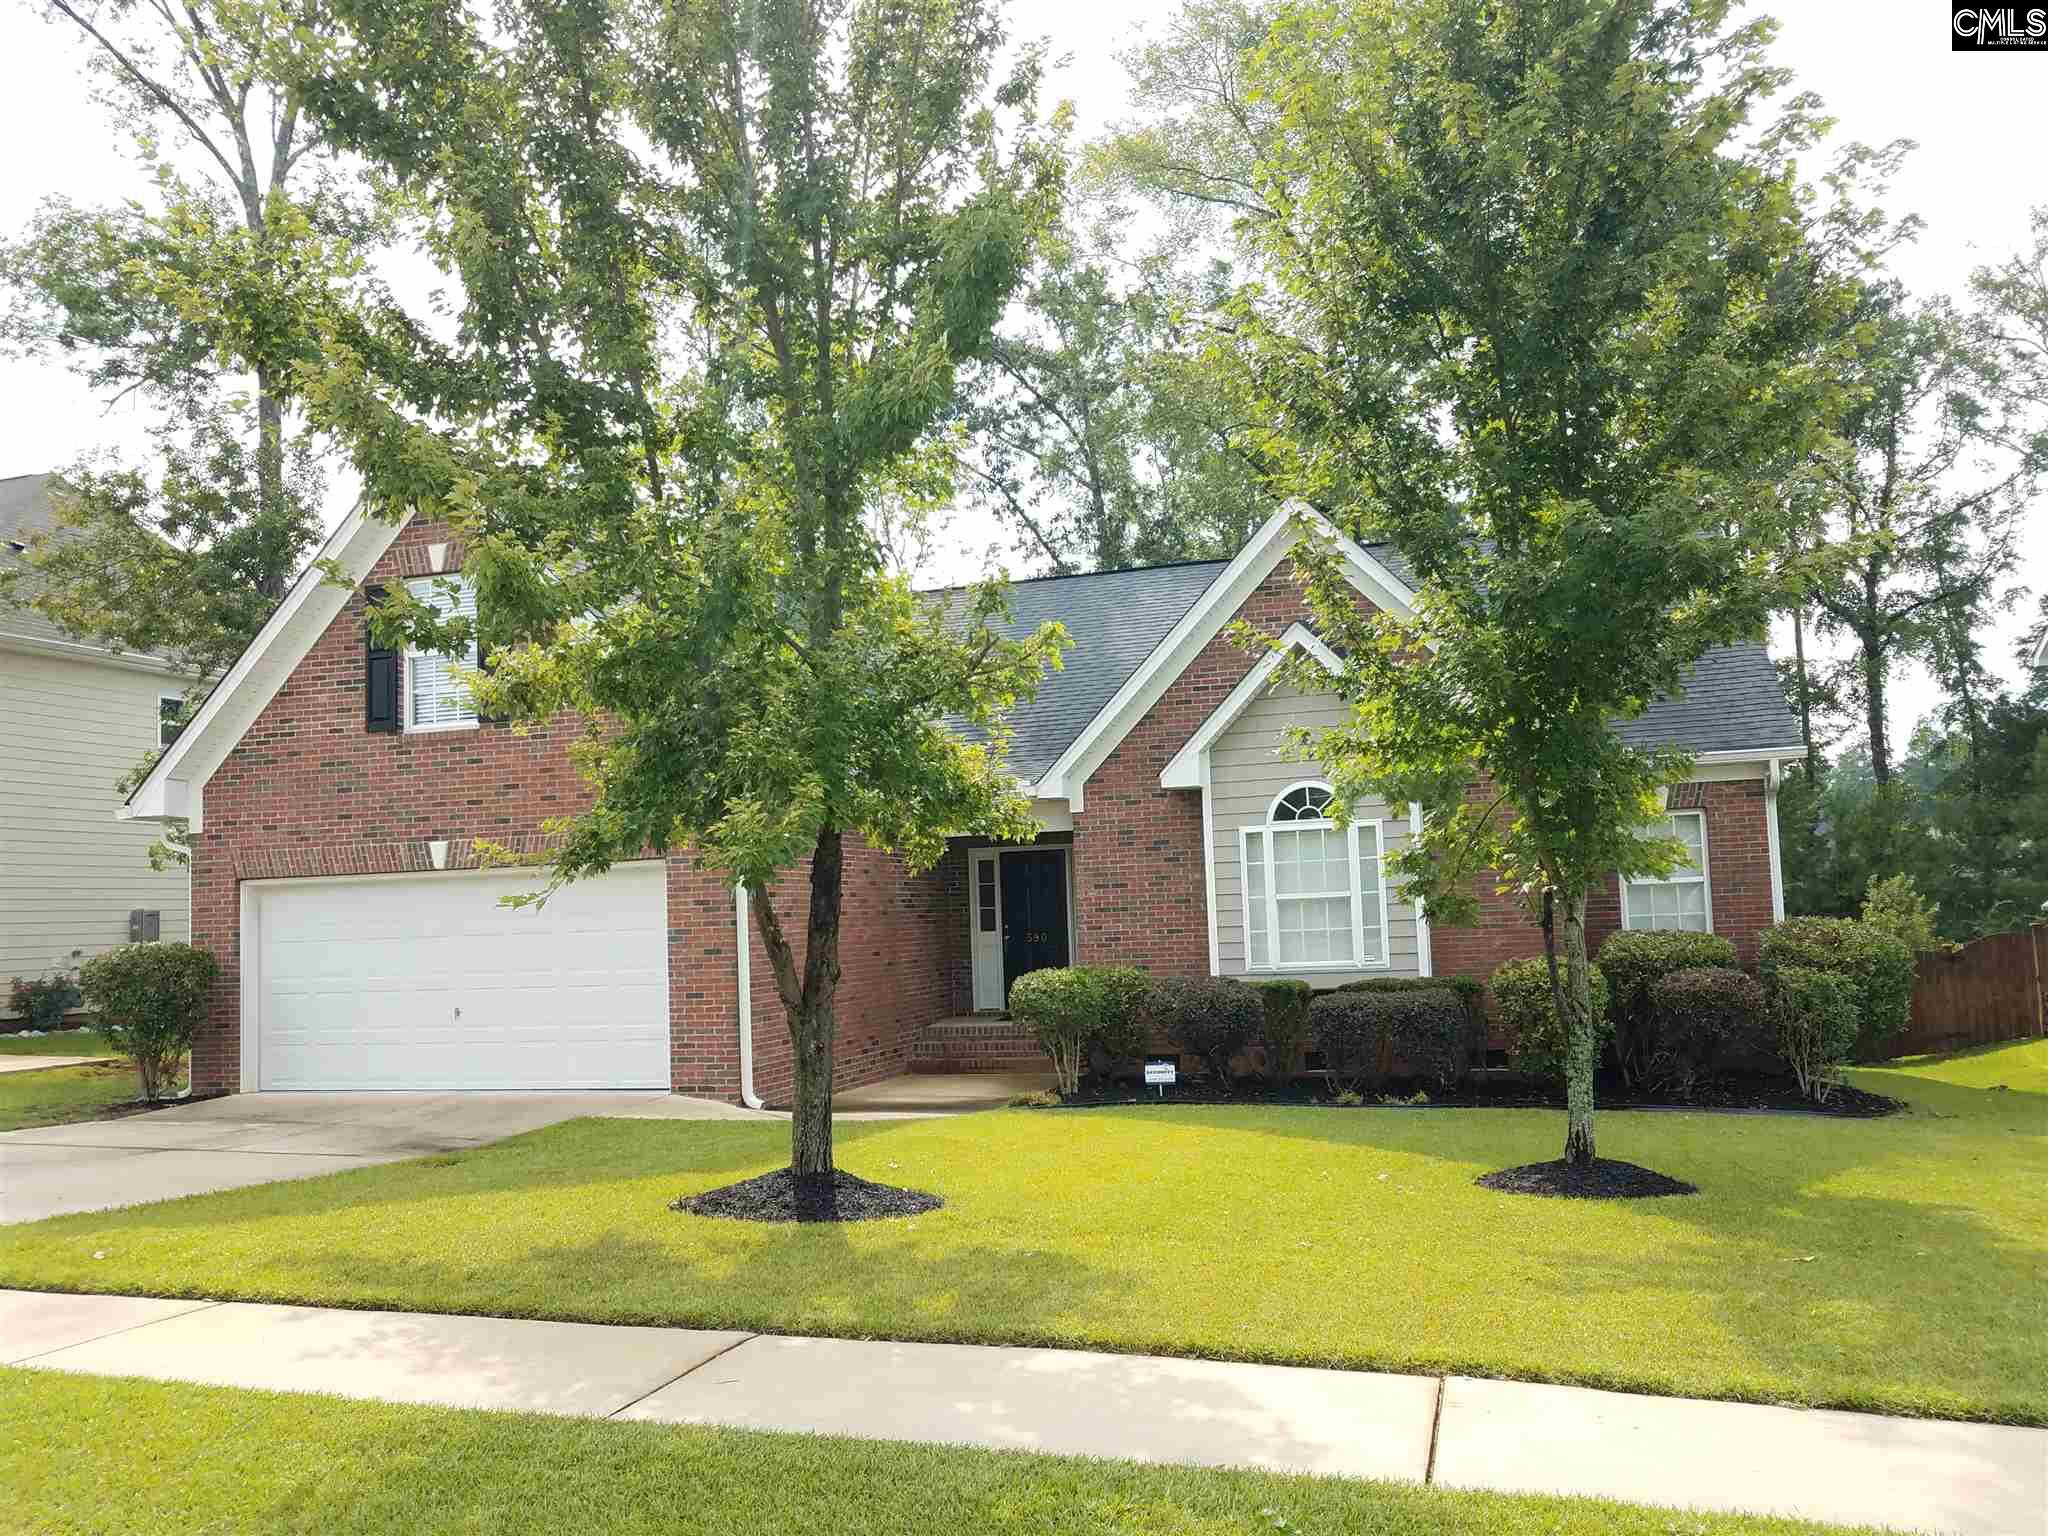 590 Eagles Rest Dr. Chapin, SC 29036